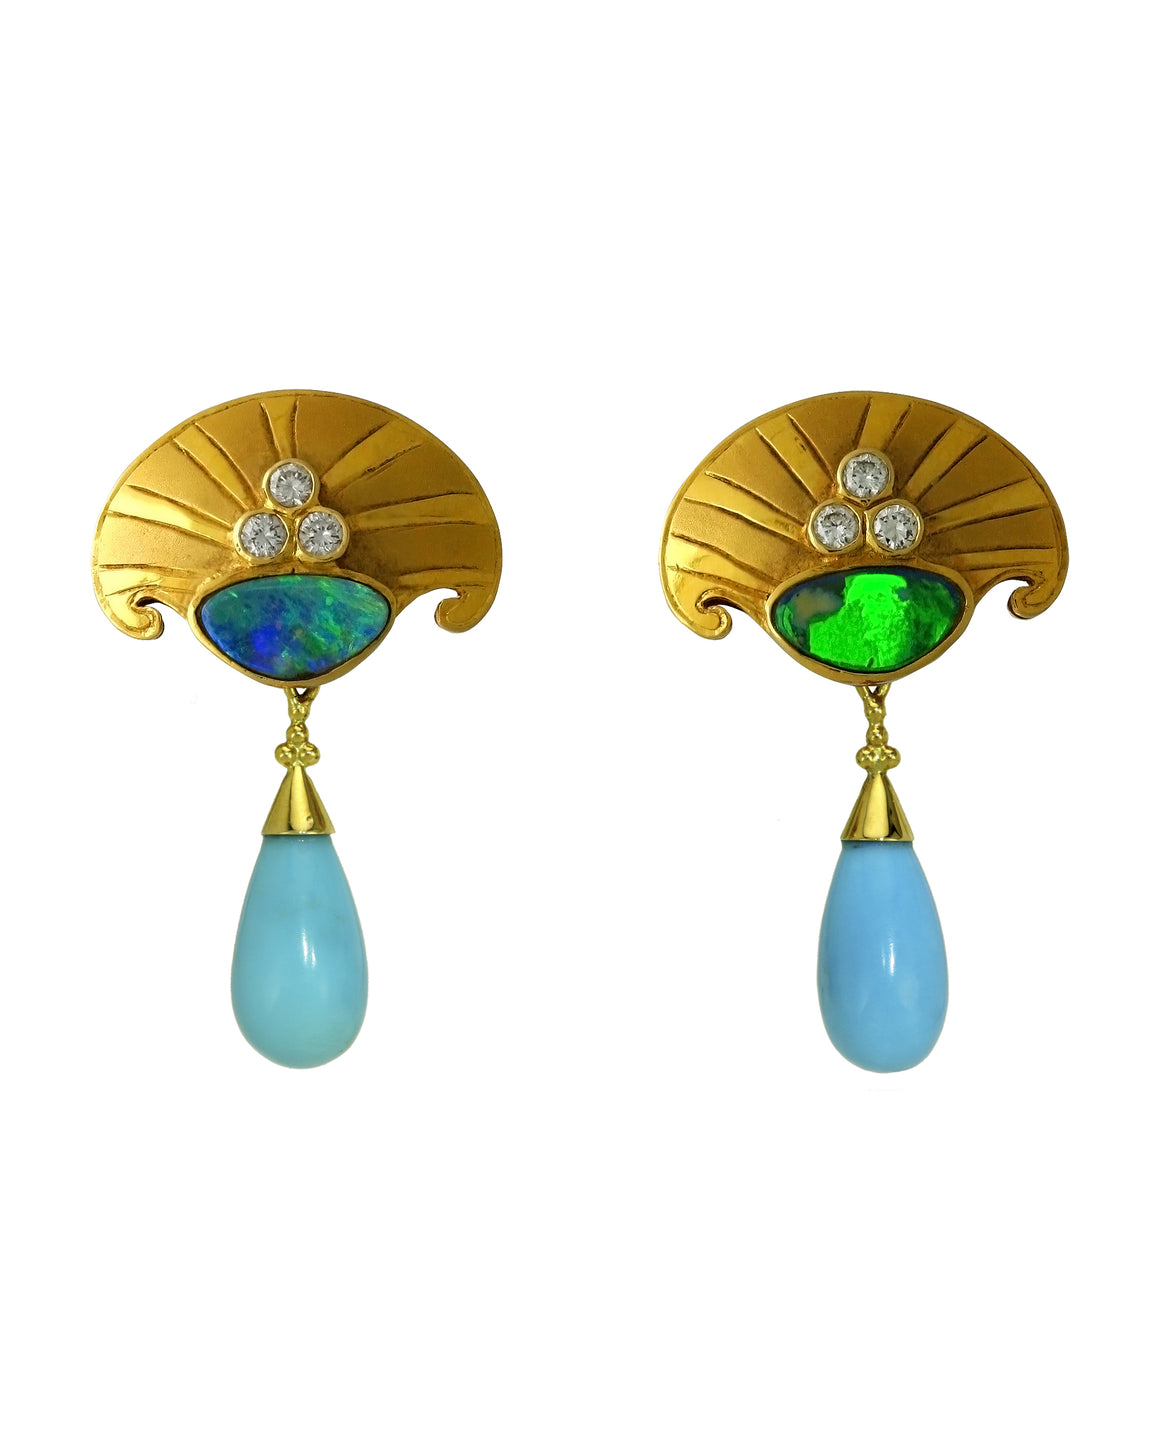 Crevoshay 18k Yellow Gold Boulder Opal Earrings with Sleeping Beauty Turquoise Drops